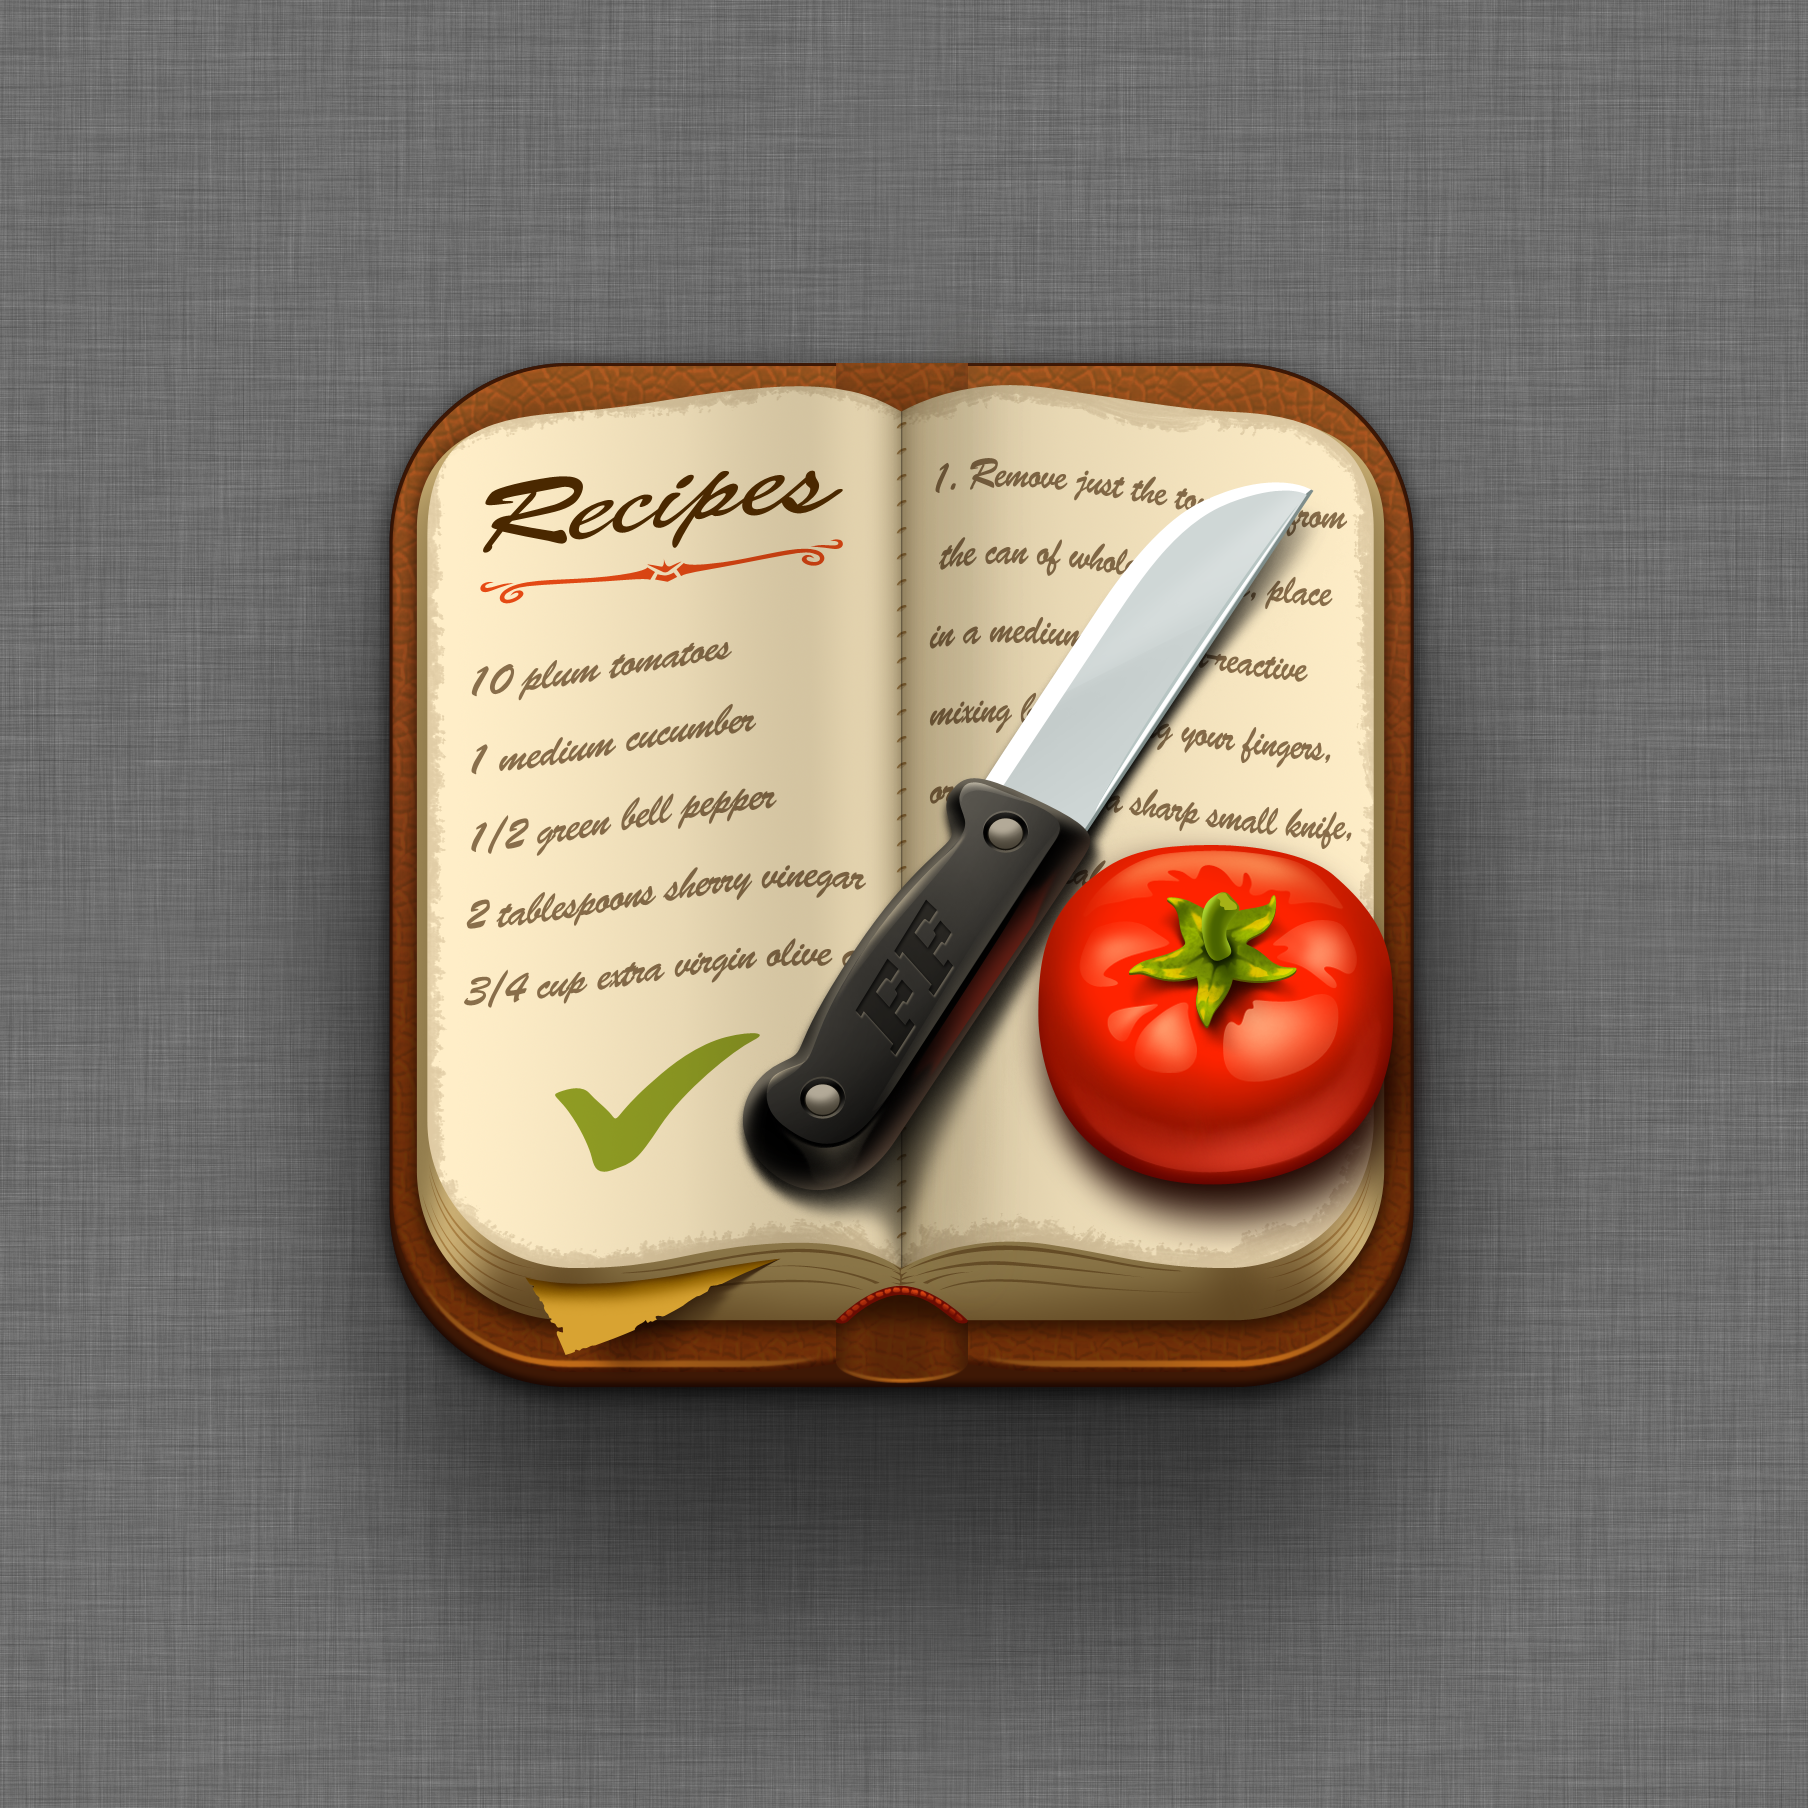 Food Files recipe manager (iOS) Icon design by Kolopach